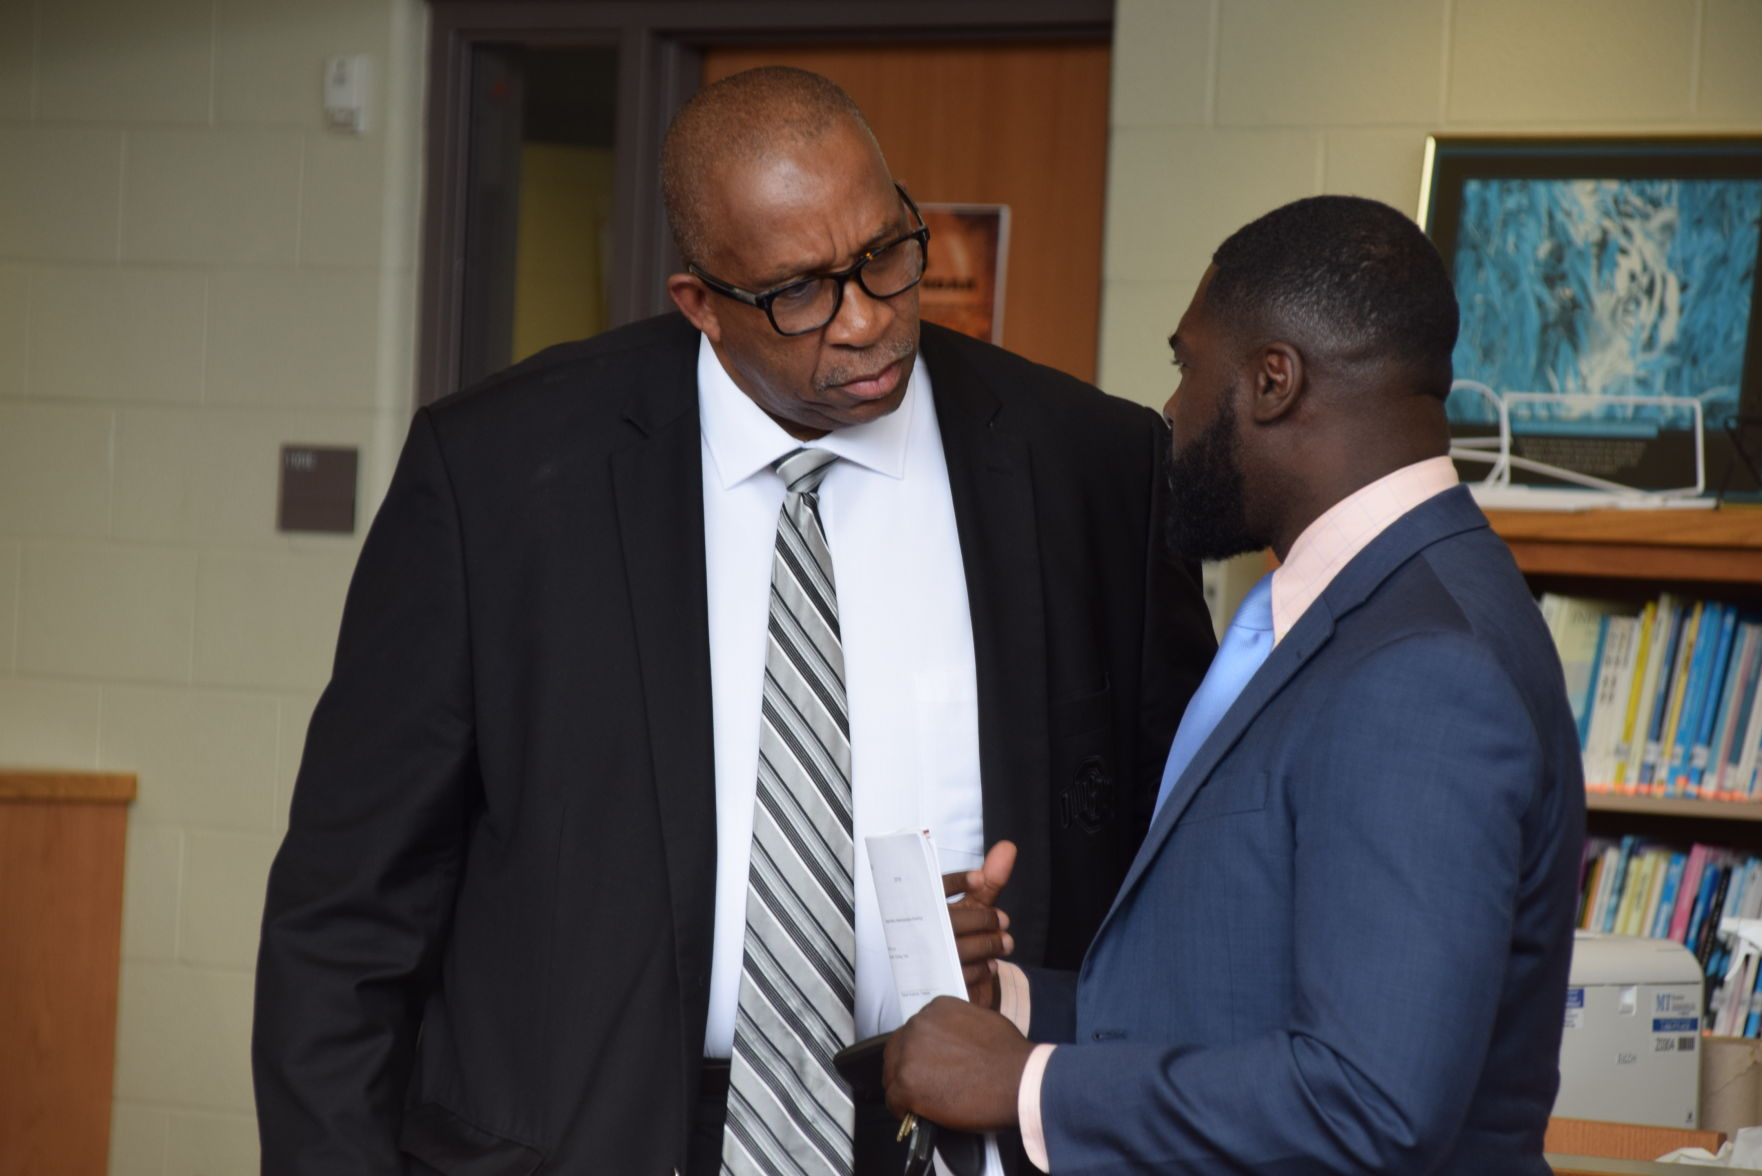 Jefferson introduced as new superintendent at Mansfield Board of Education meeting